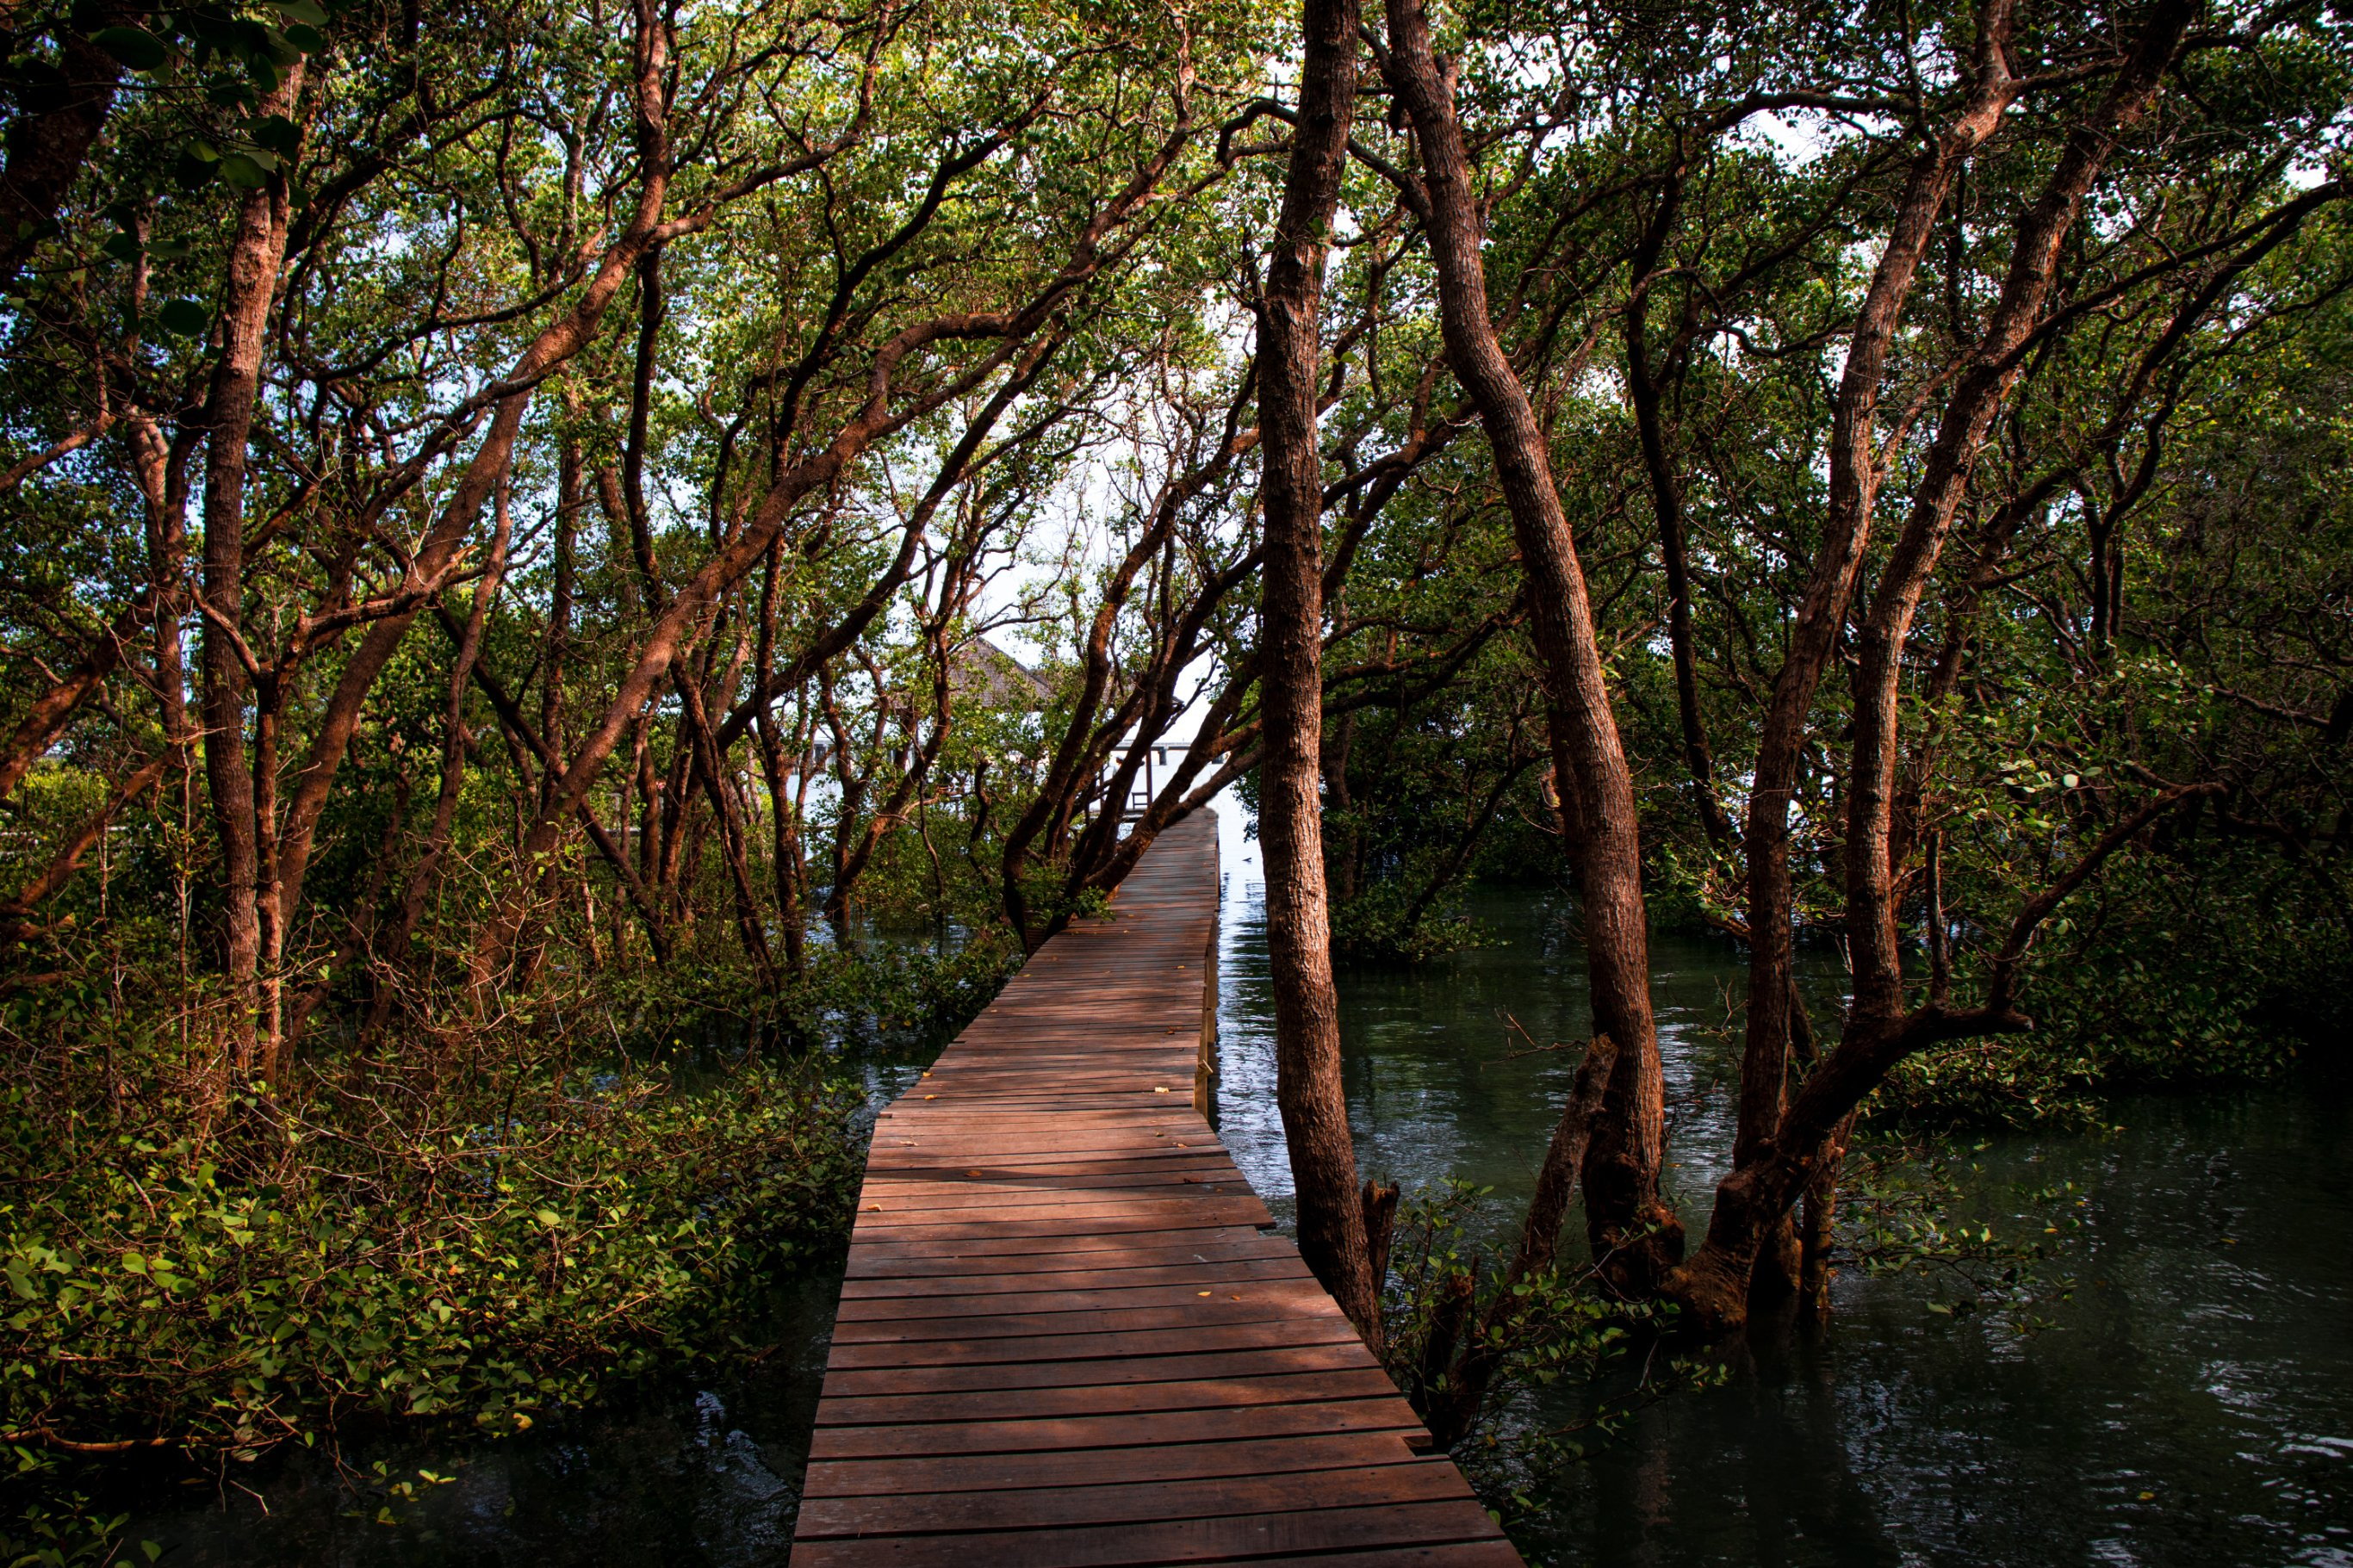 1-Day Can Gio Mangrove Forest & Vam Sat Eco Park - Vietnam Itinerary